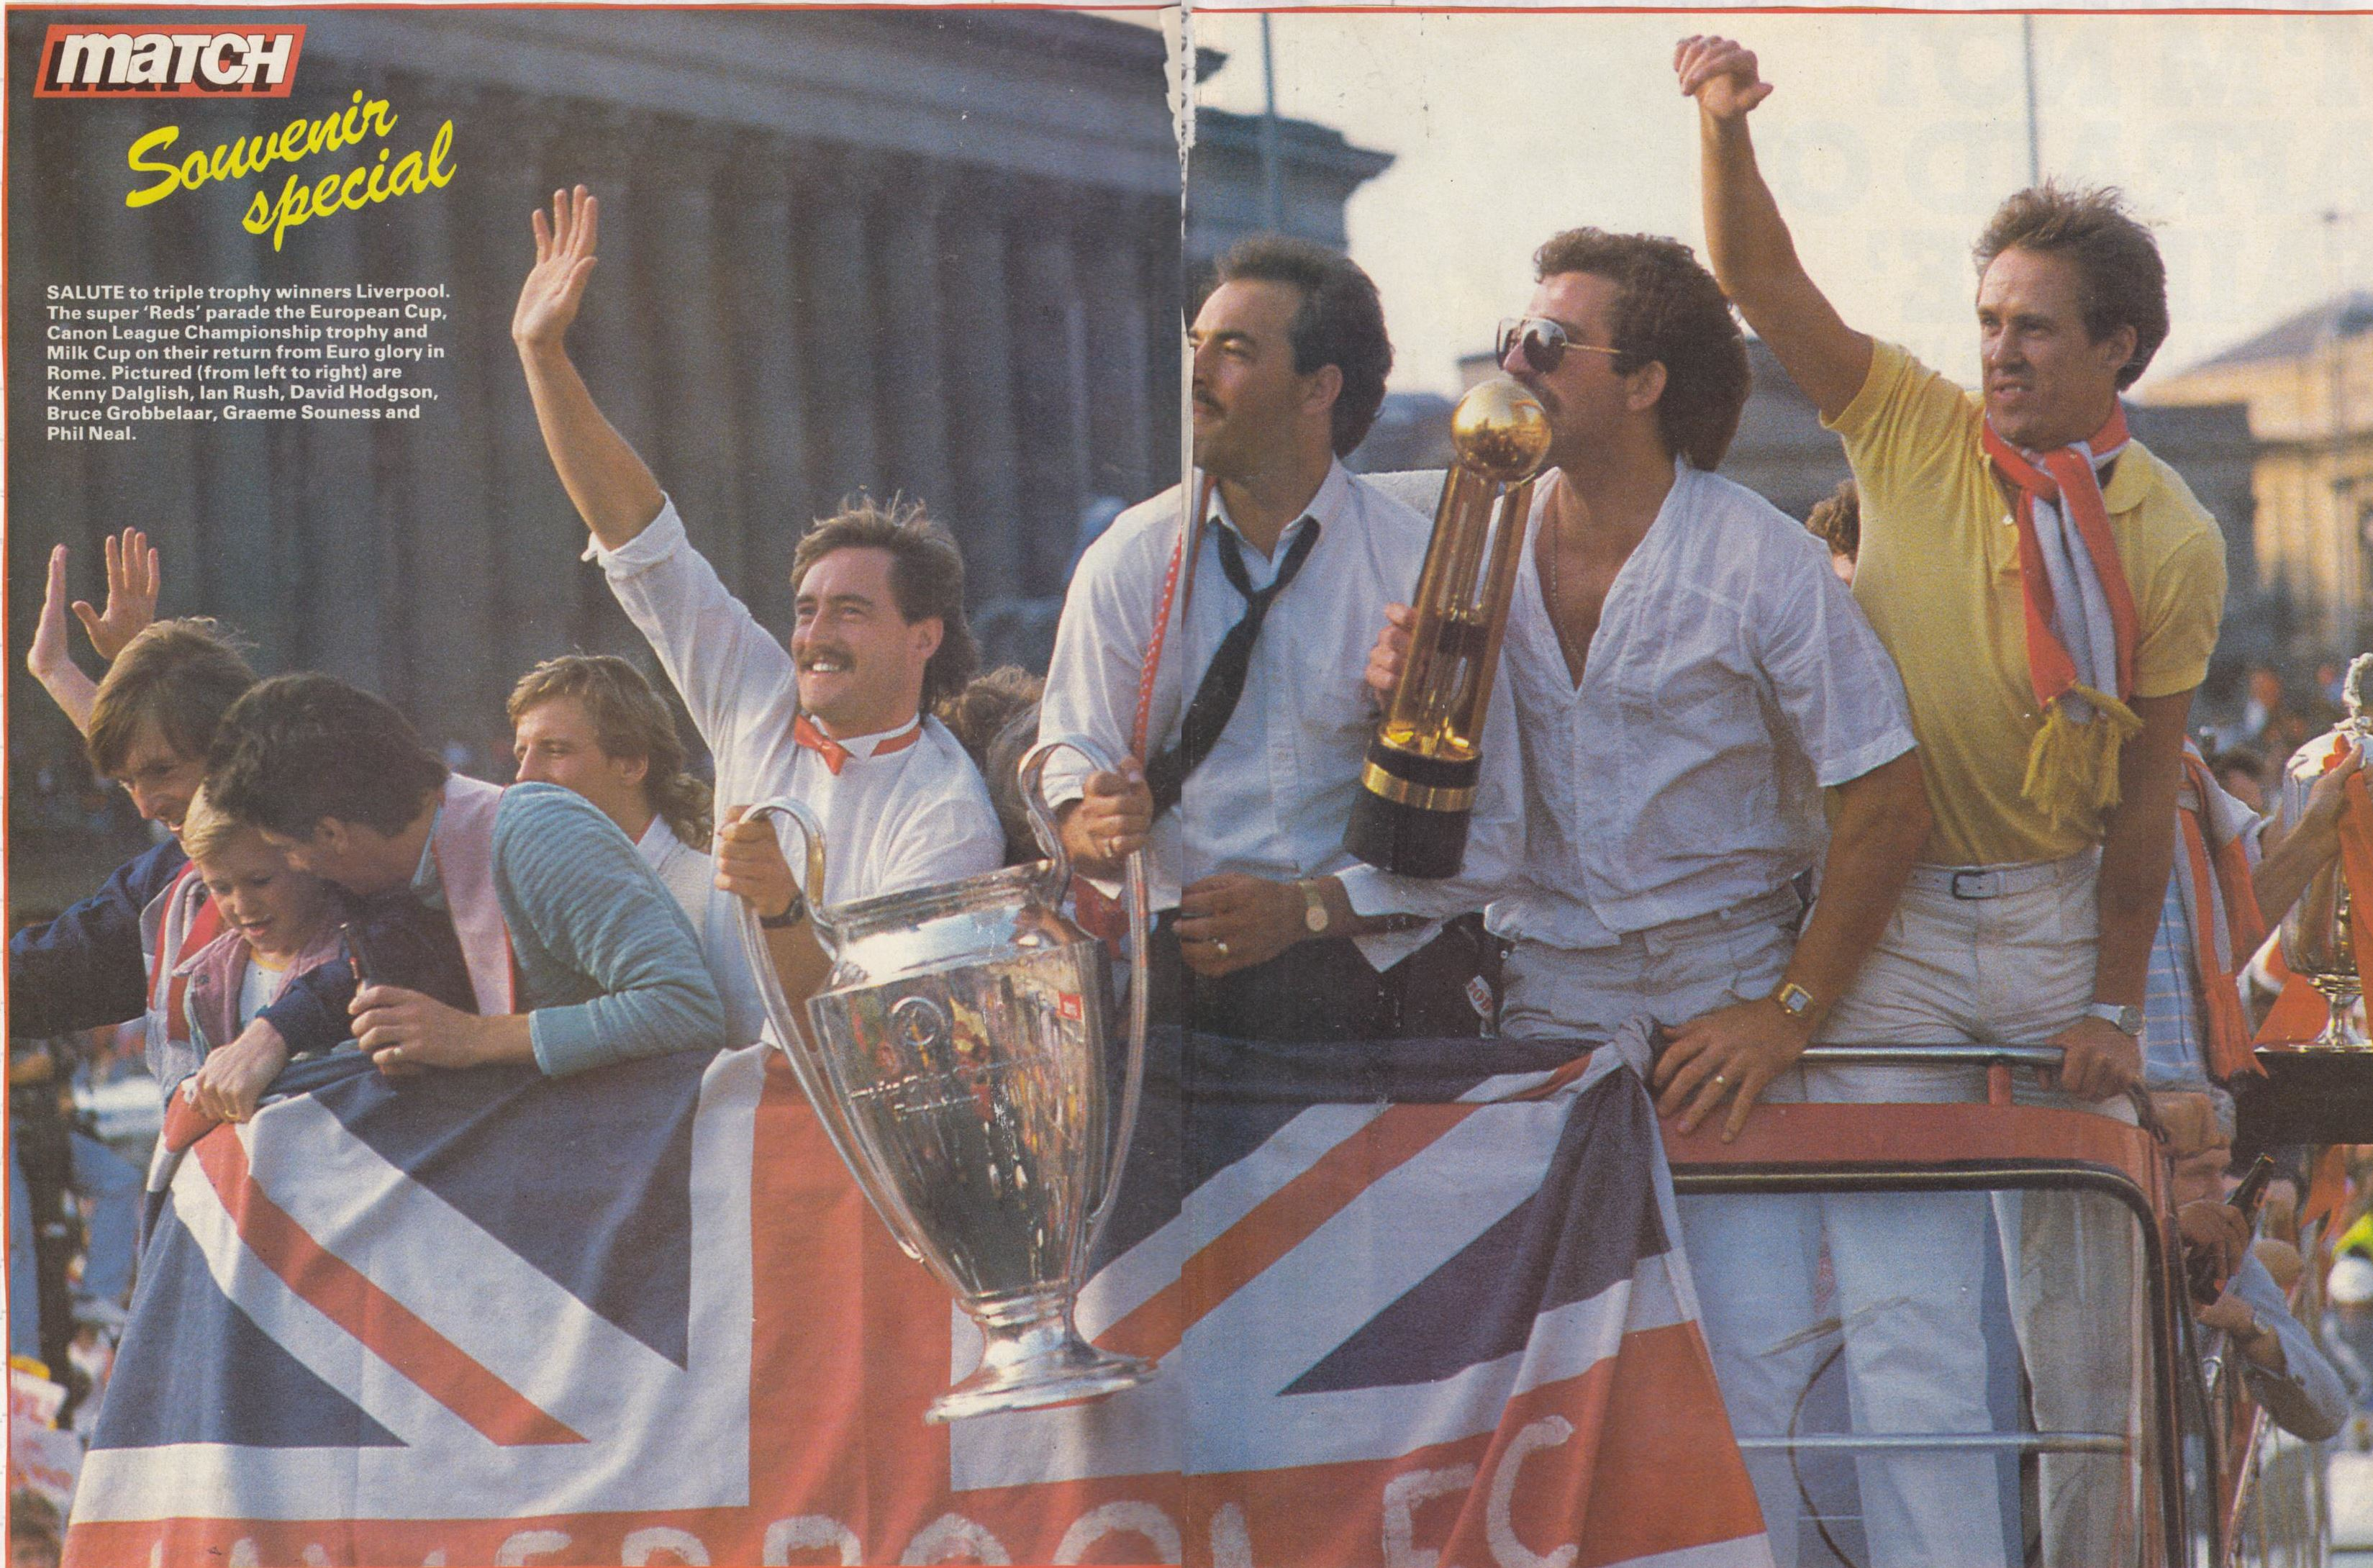 Salute to the treble winners! - Match May1984